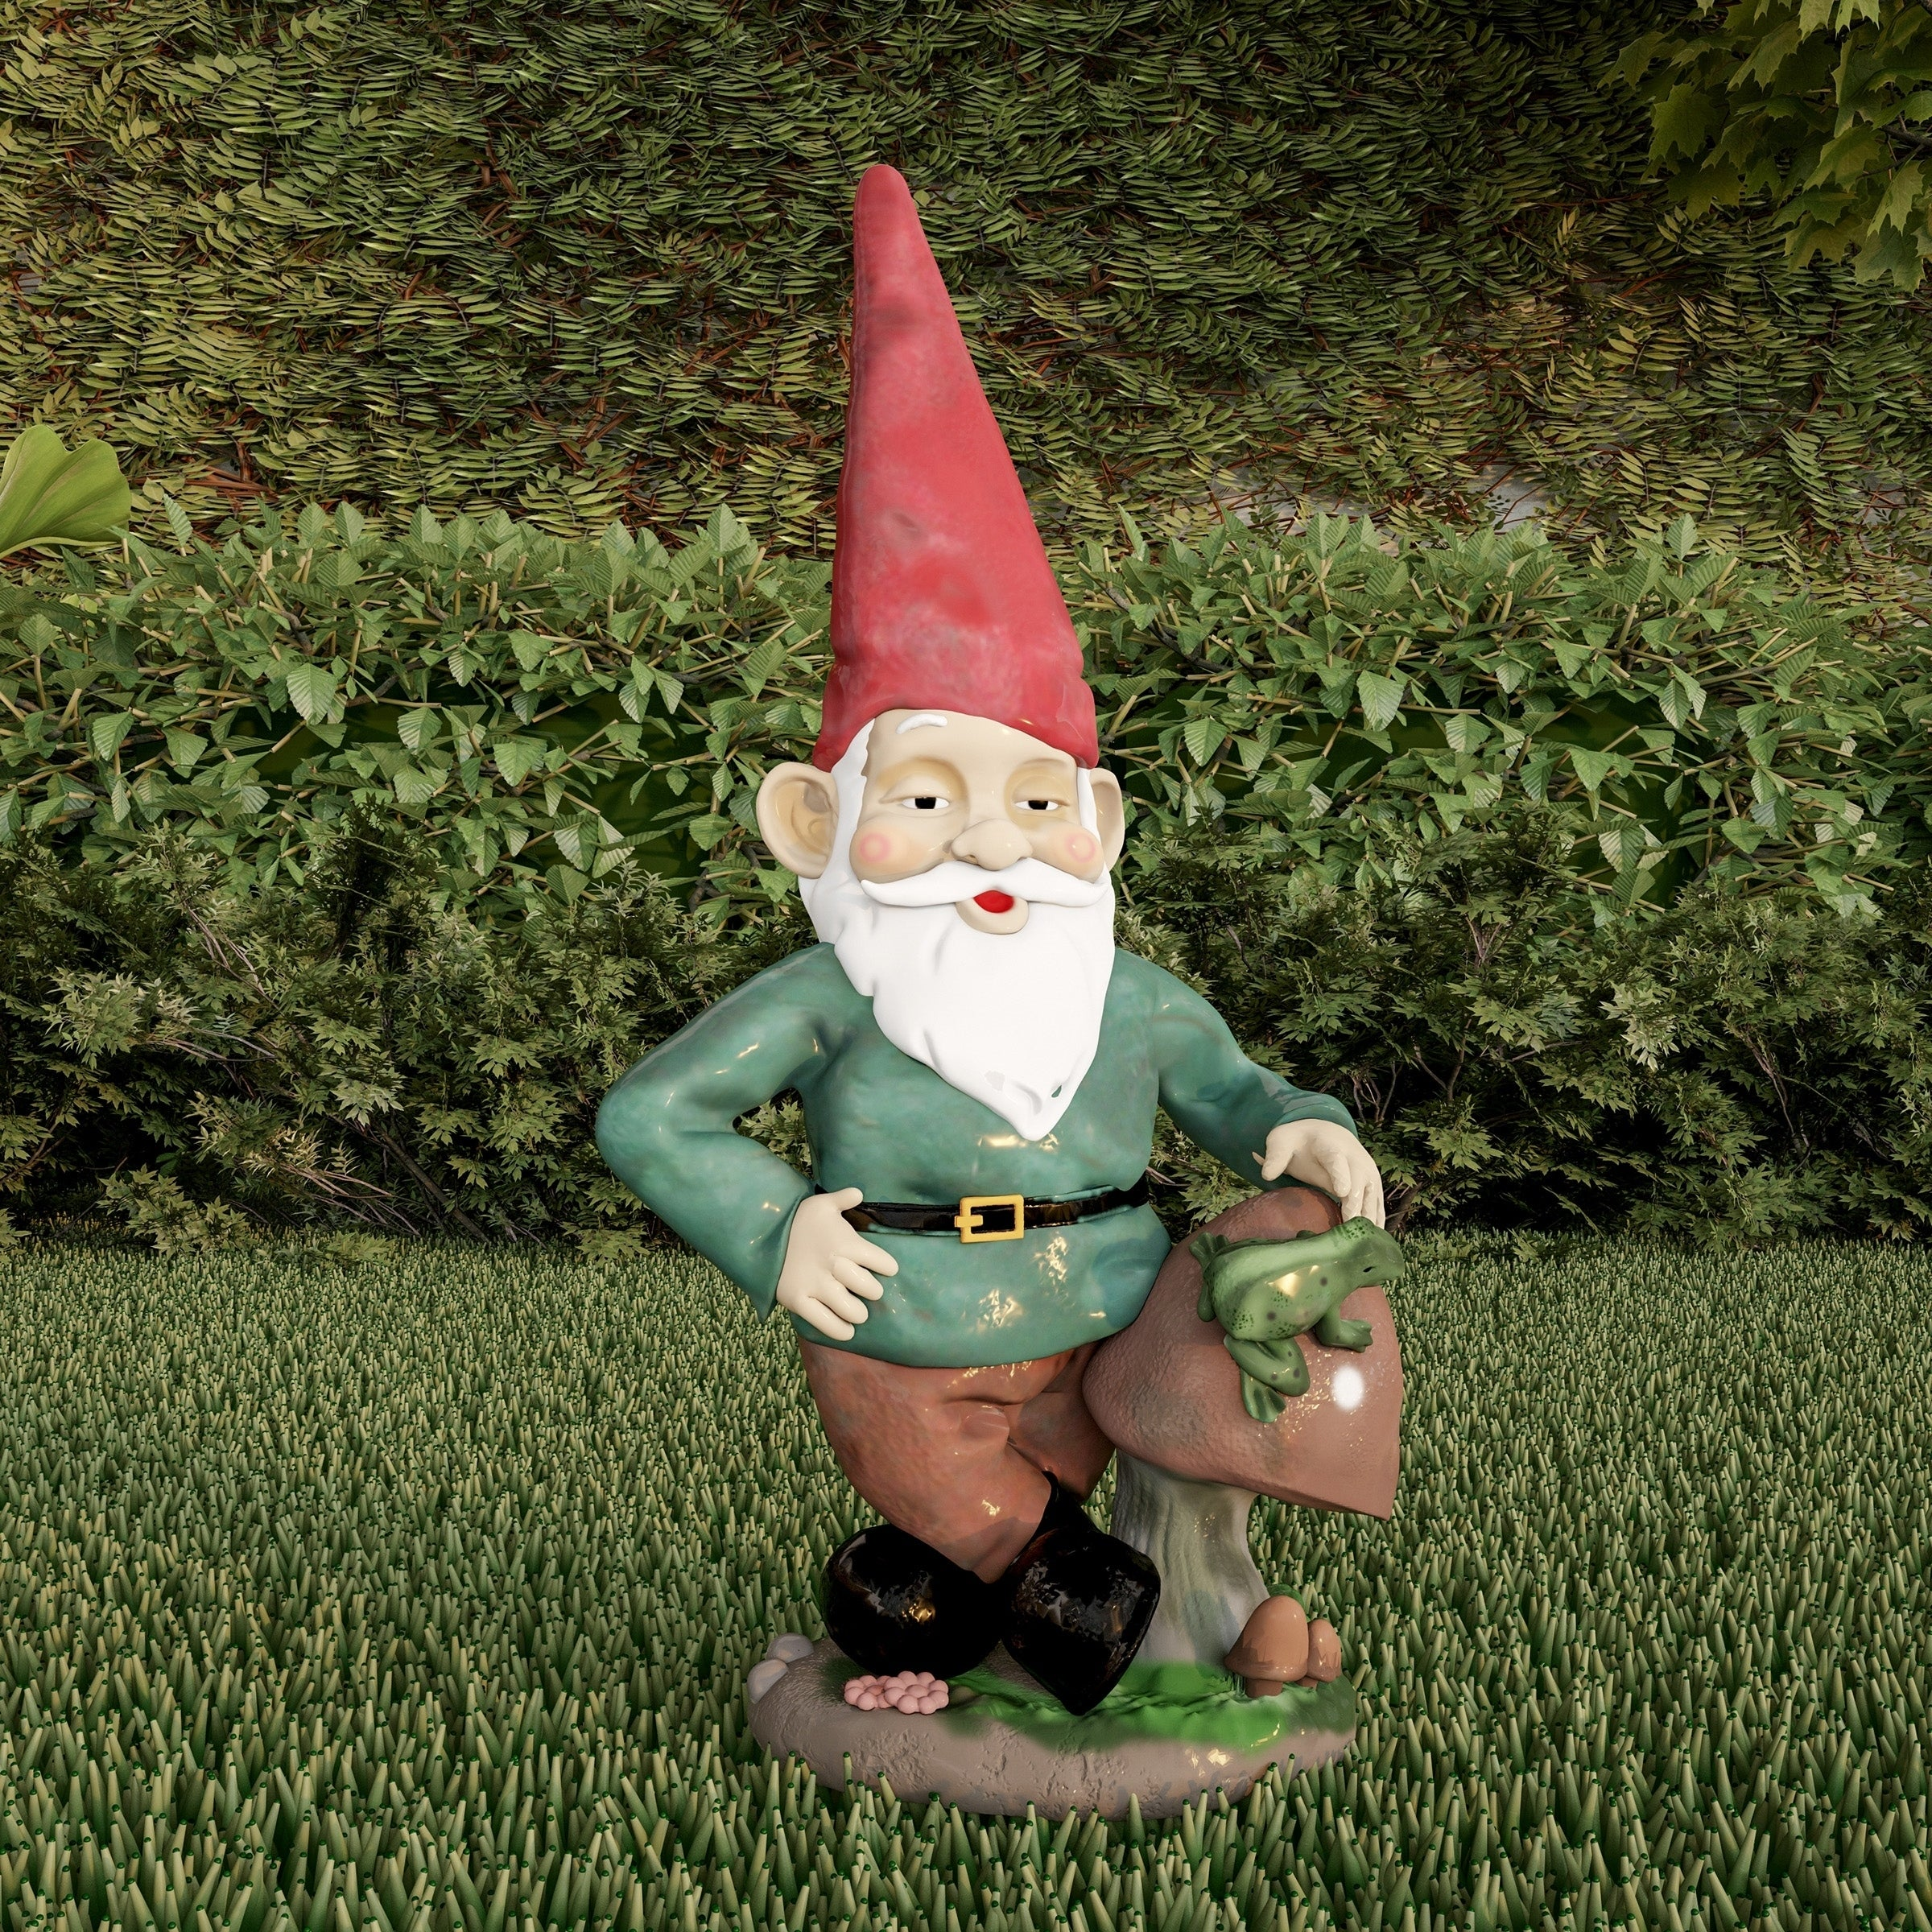 Shop Lawn Gnome Statue Fun Classic Style Resin Figurine By Pure Garden    Free Shipping On Orders Over $45   Overstock   25491413